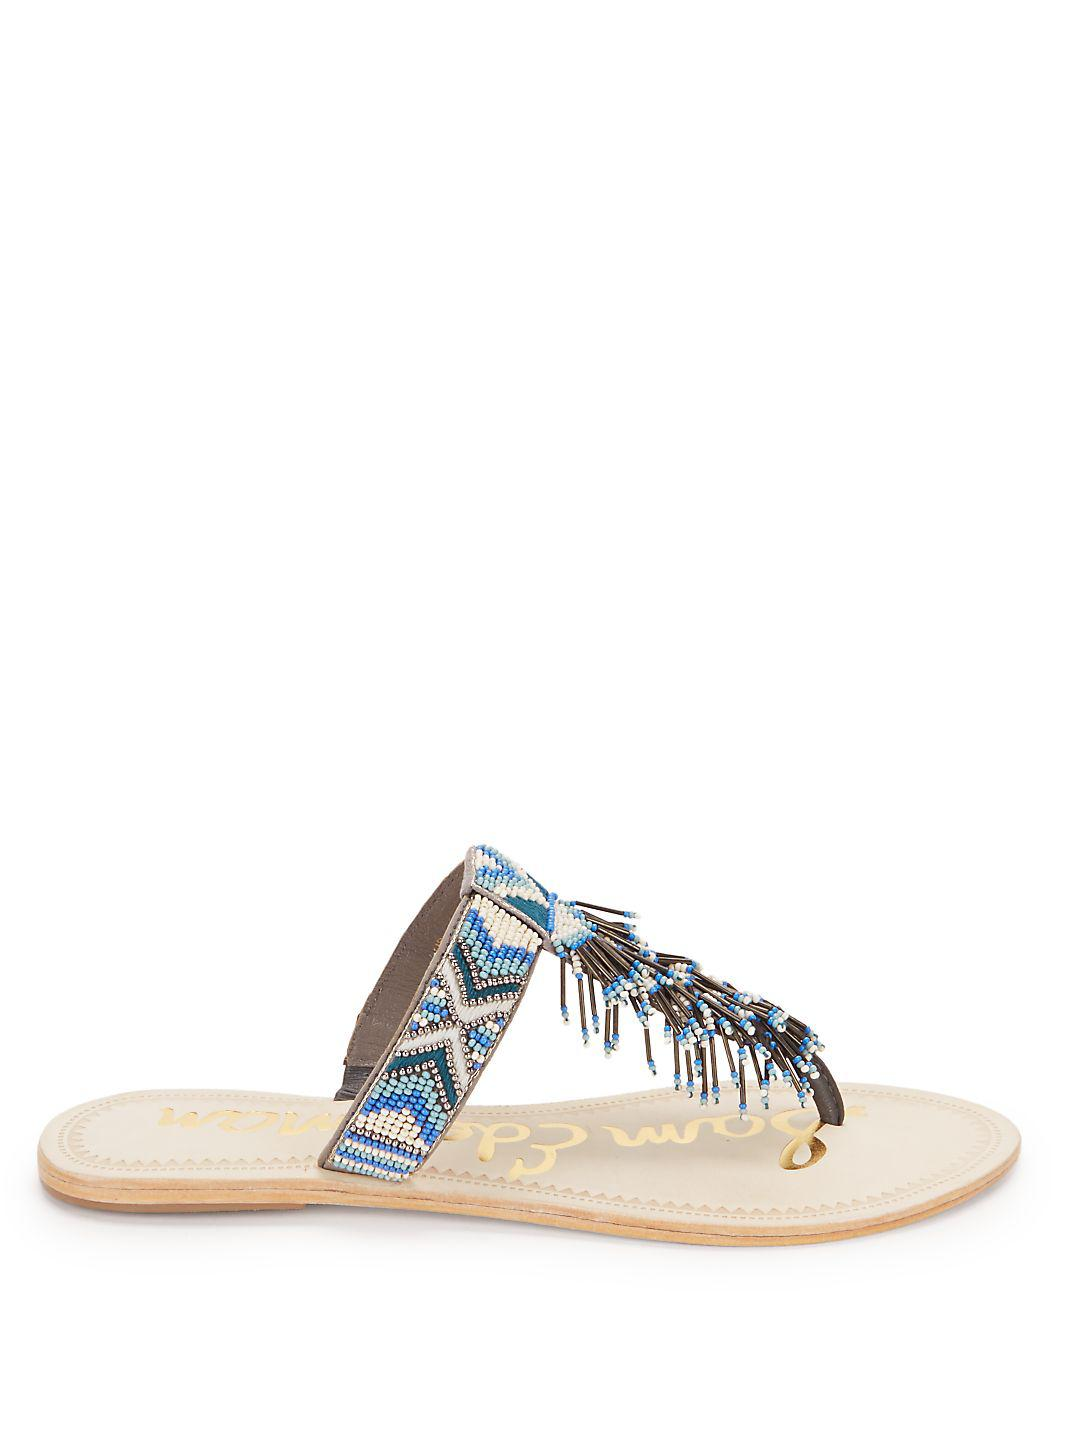 dc4d52dc6f44 Lyst - Sam Edelman Anella Thong Sandals in Pink